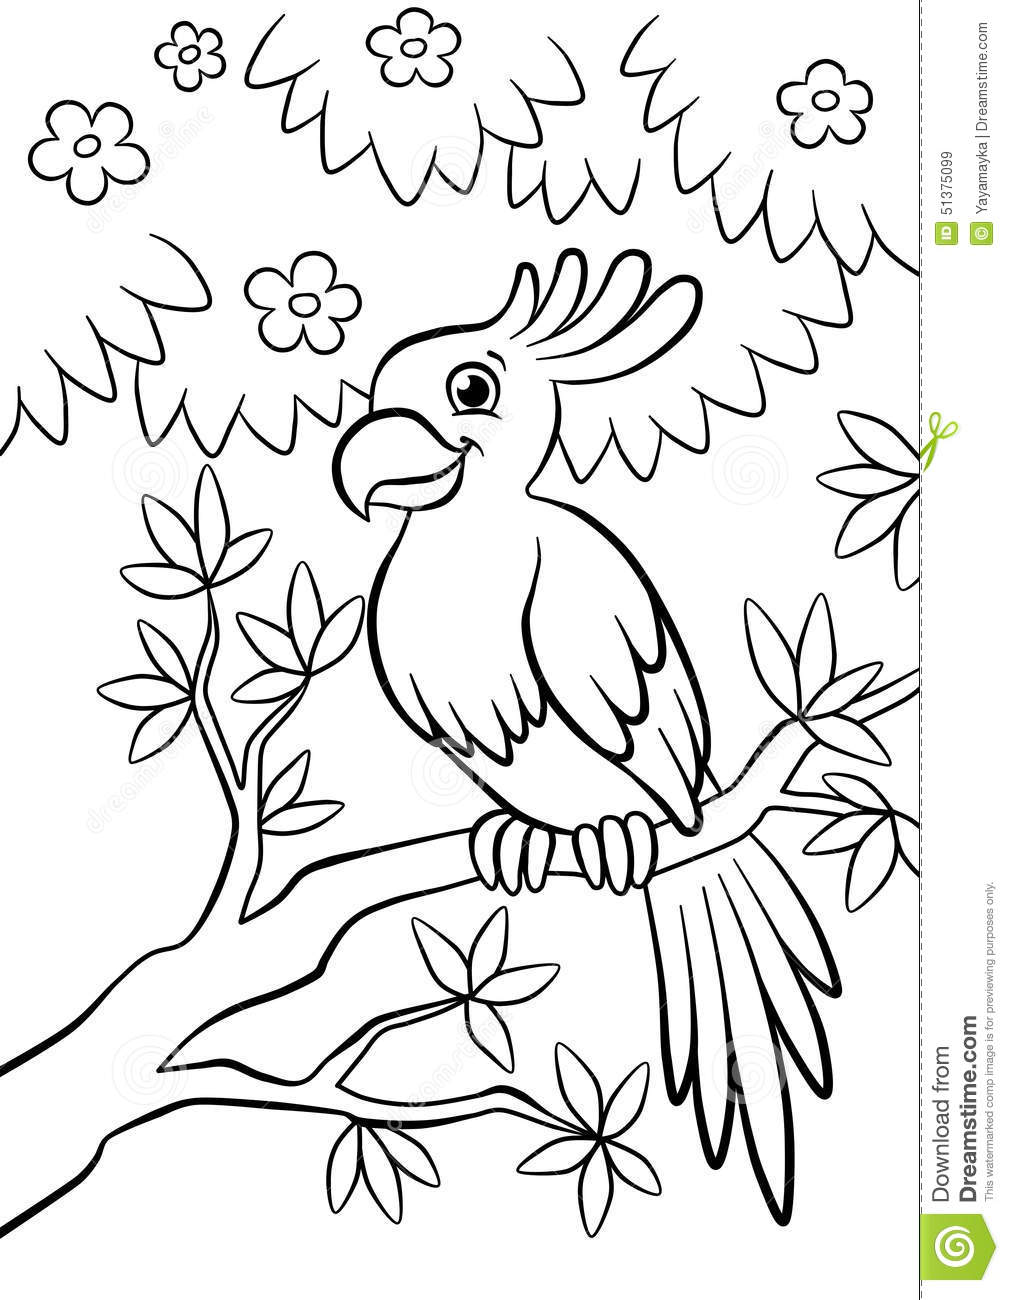 cute kind parrot sitting on the flowered tree in the forest stock illustration illustration of. Black Bedroom Furniture Sets. Home Design Ideas